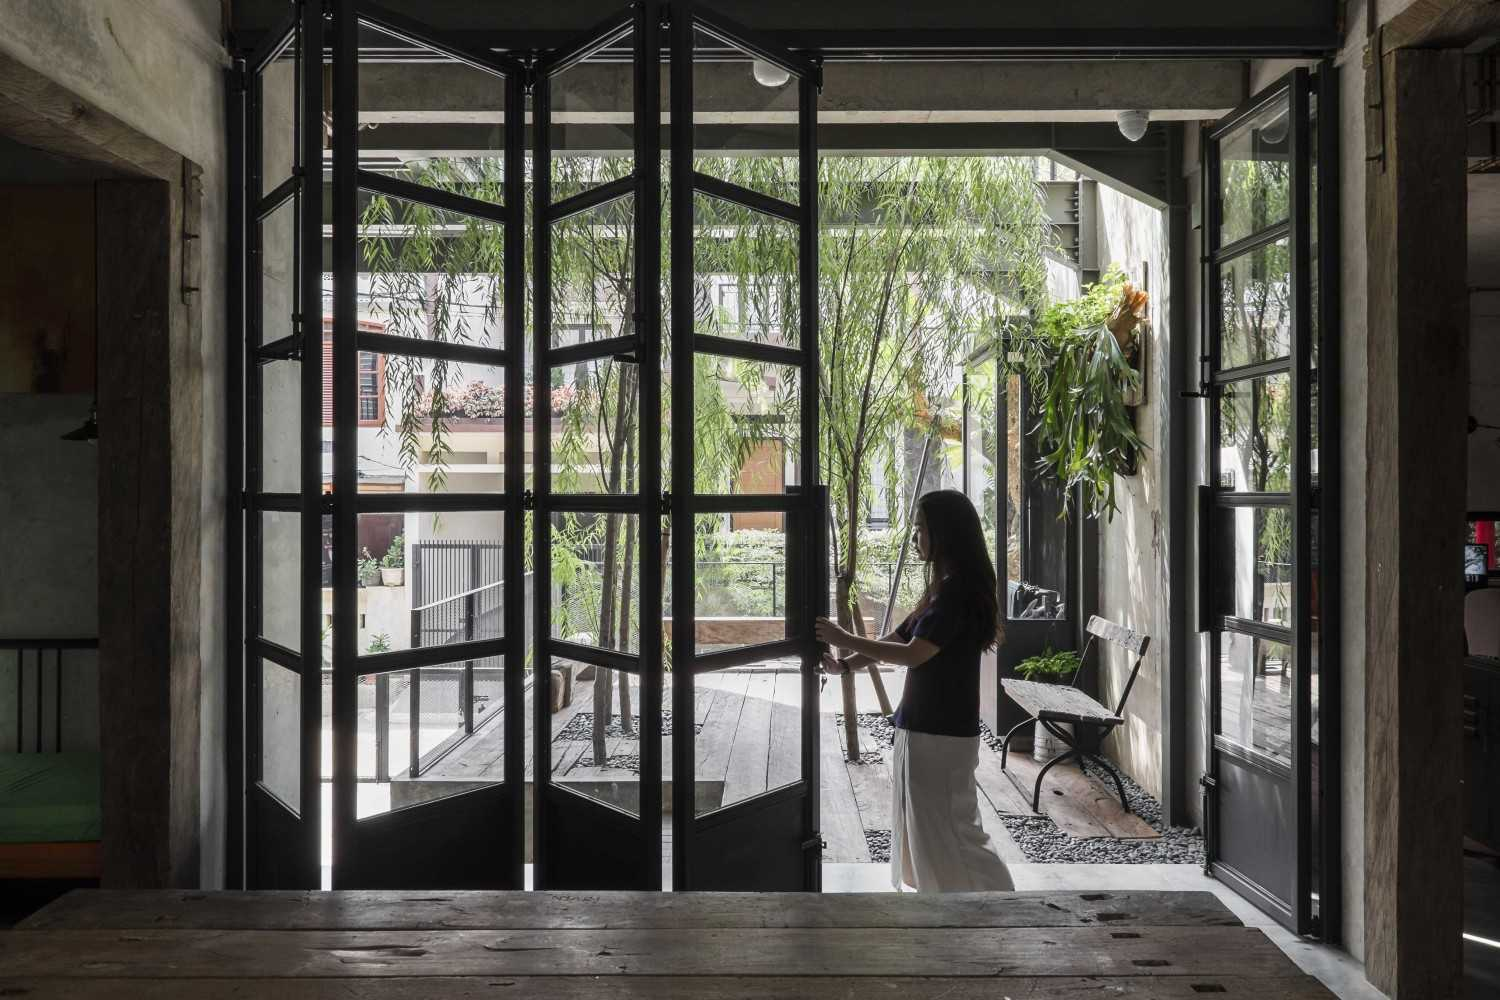 Bitte Design Studio Aa Residence Cimanggis, Indonesia Cimanggis, Indonesia Folding Door  23128